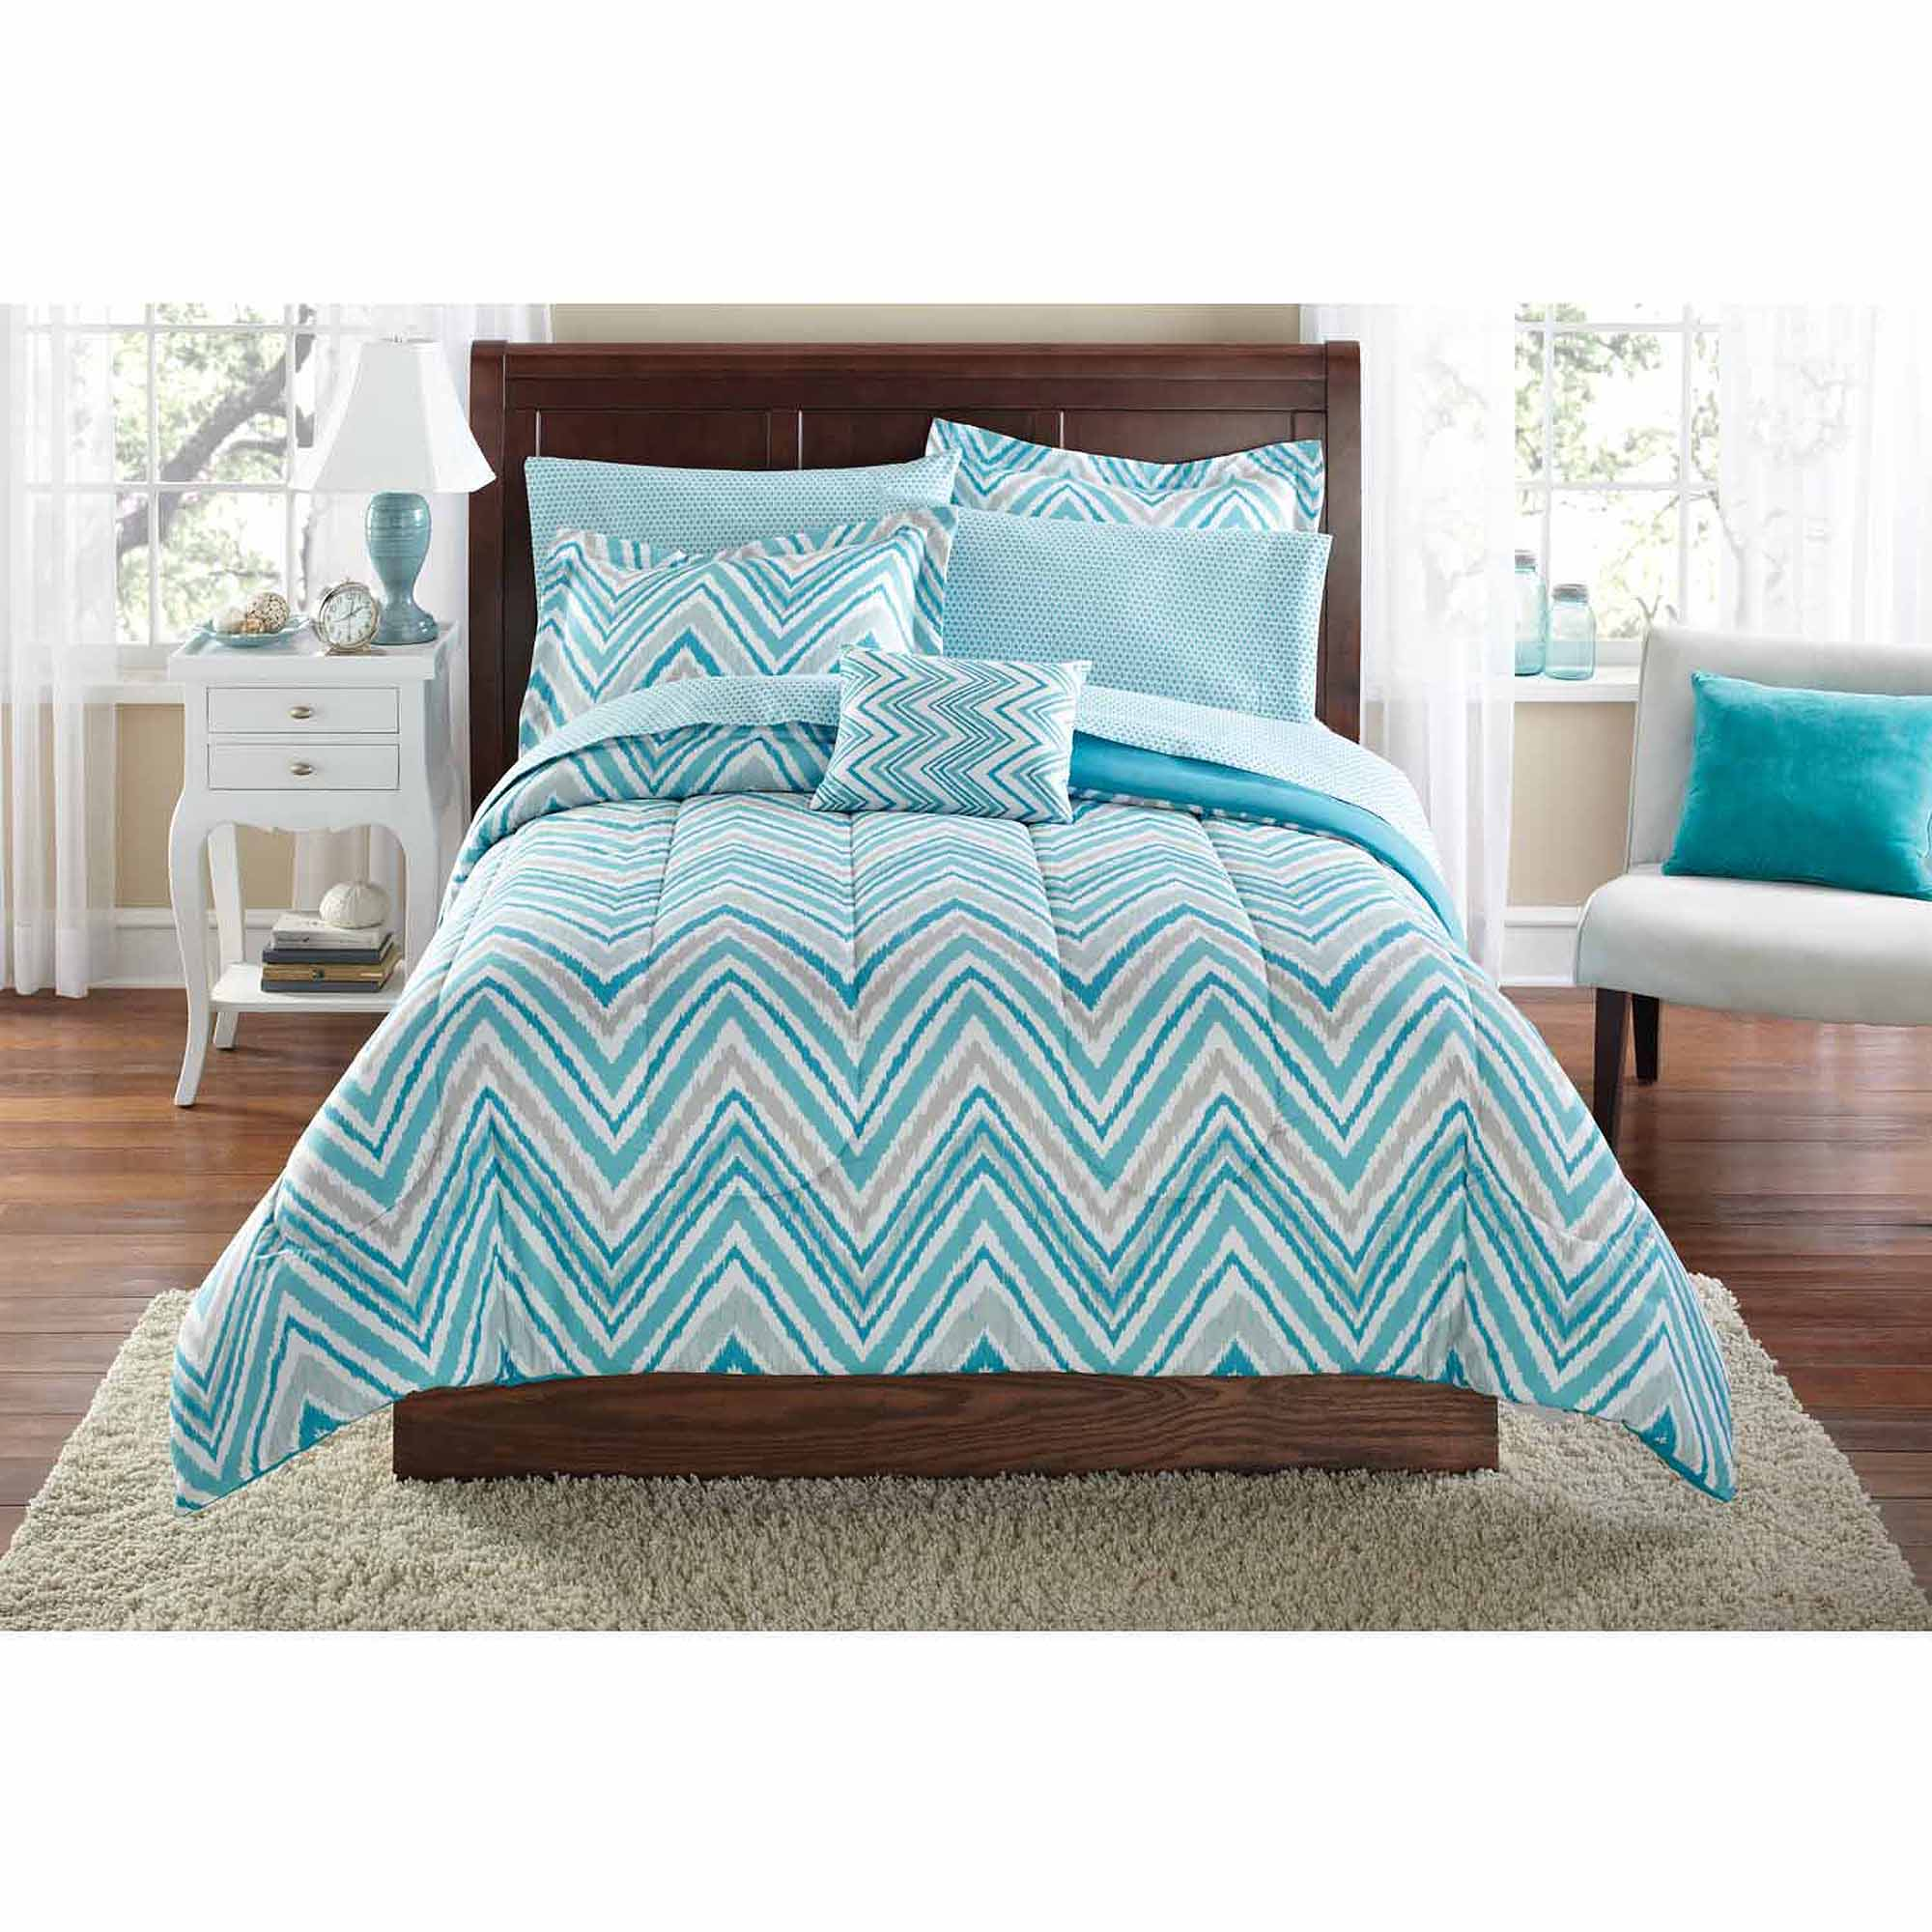 Bedding sets for teenage girls walmart - Bedding Sets For Teenage Girls Walmart 1